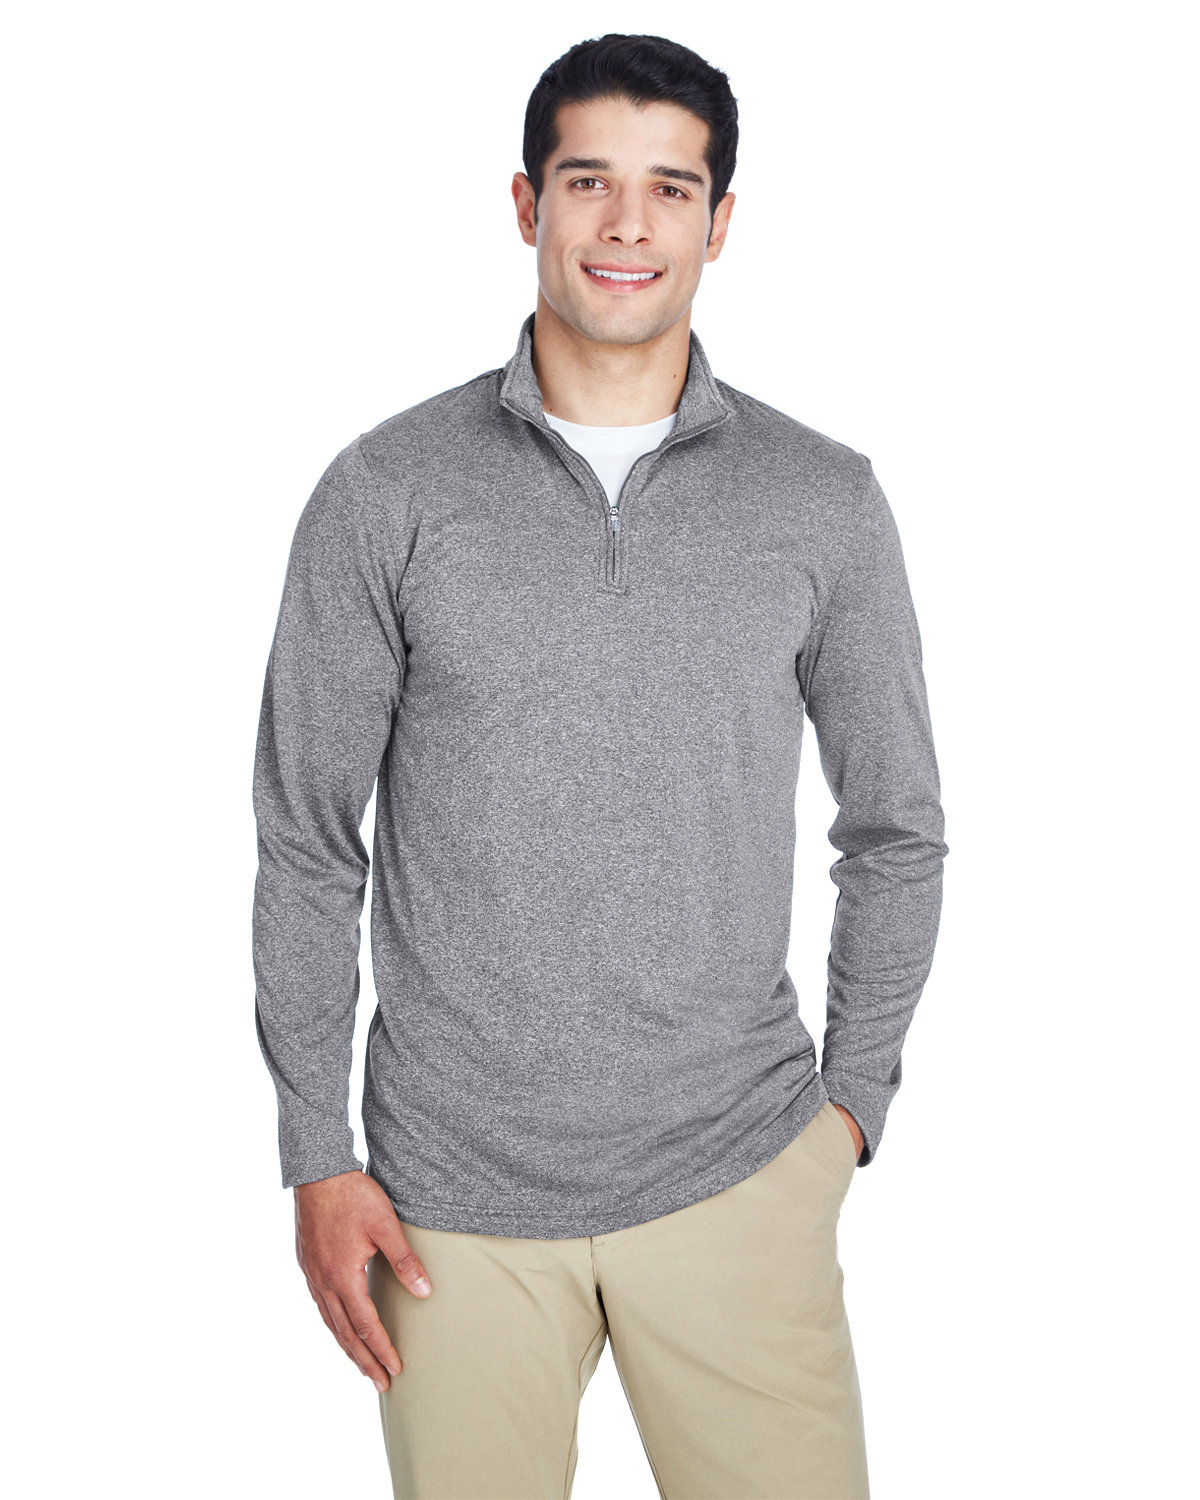 UltraClub Men's Cool & Dry Heathered Performance Quarter-Zip CHARCOAL HEATHER